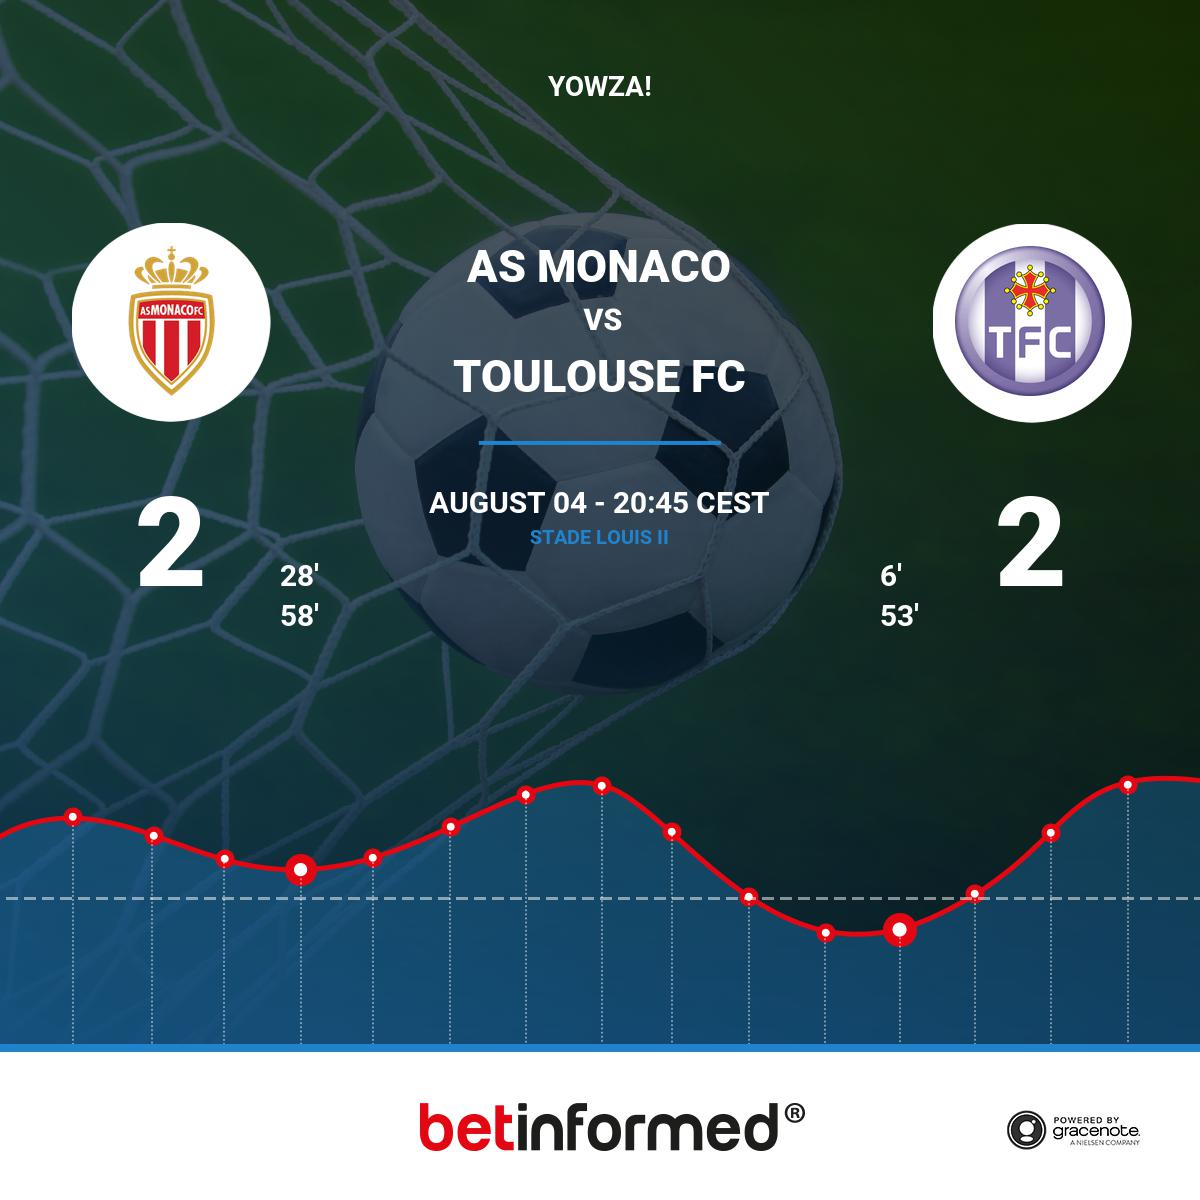 SCORE UPDATE!  #Ligue1 AS Monaco - 2 Toulouse FC - 2 Scored by Falcao in the 58&#39; ! #ASMASSE, #asmonaco<br>http://pic.twitter.com/hSyhGBeIOi